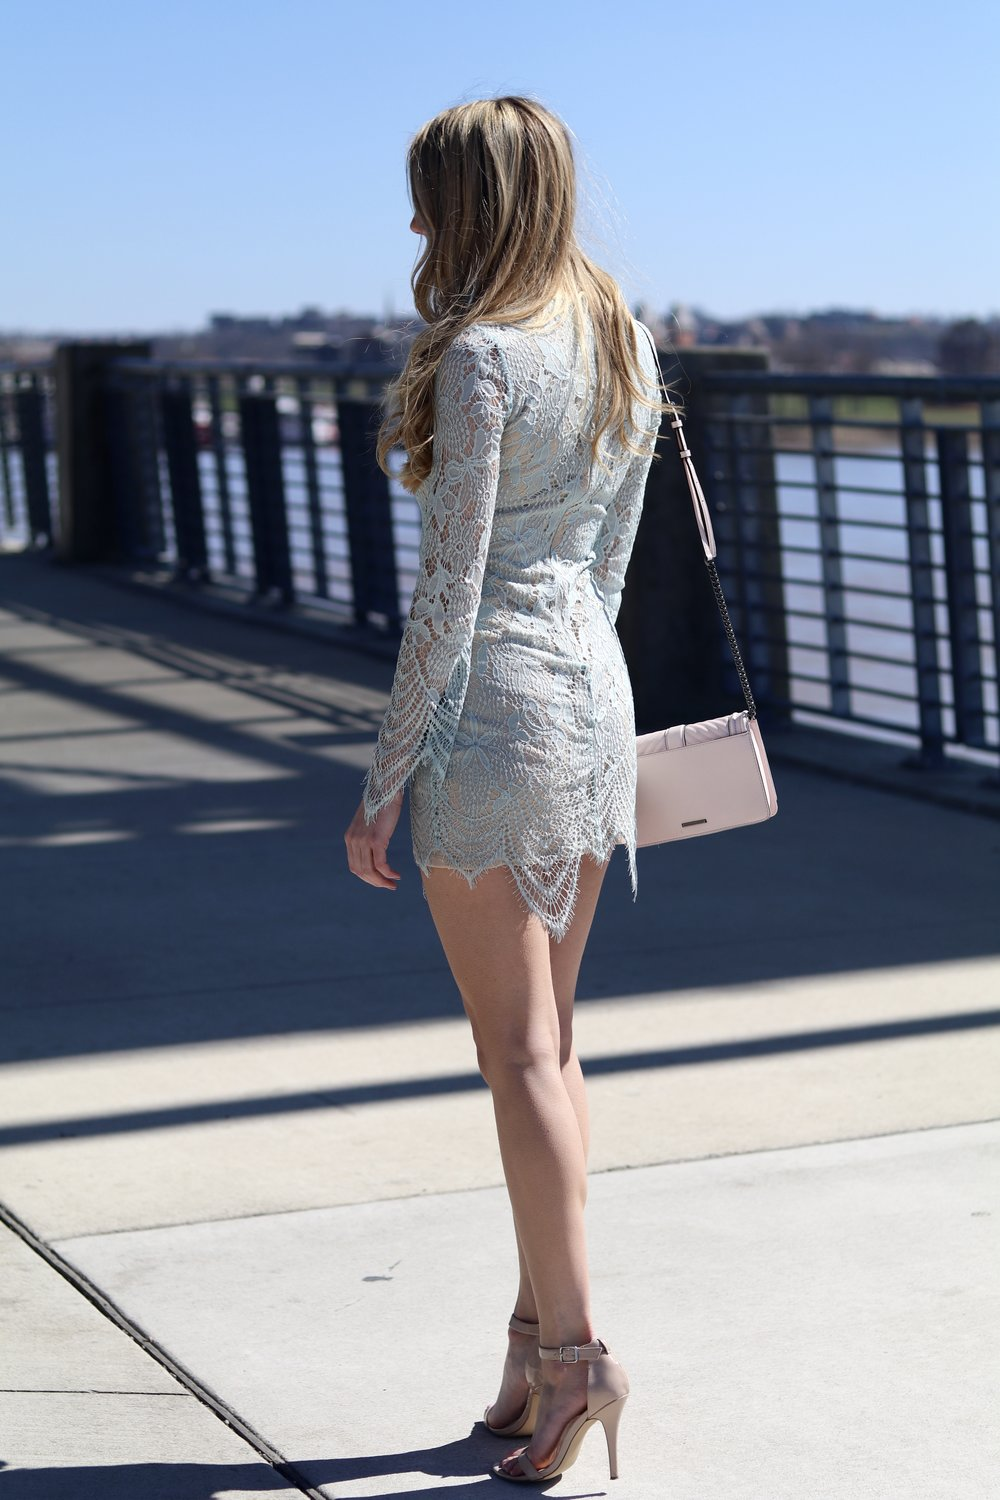 gilt edge | minidress